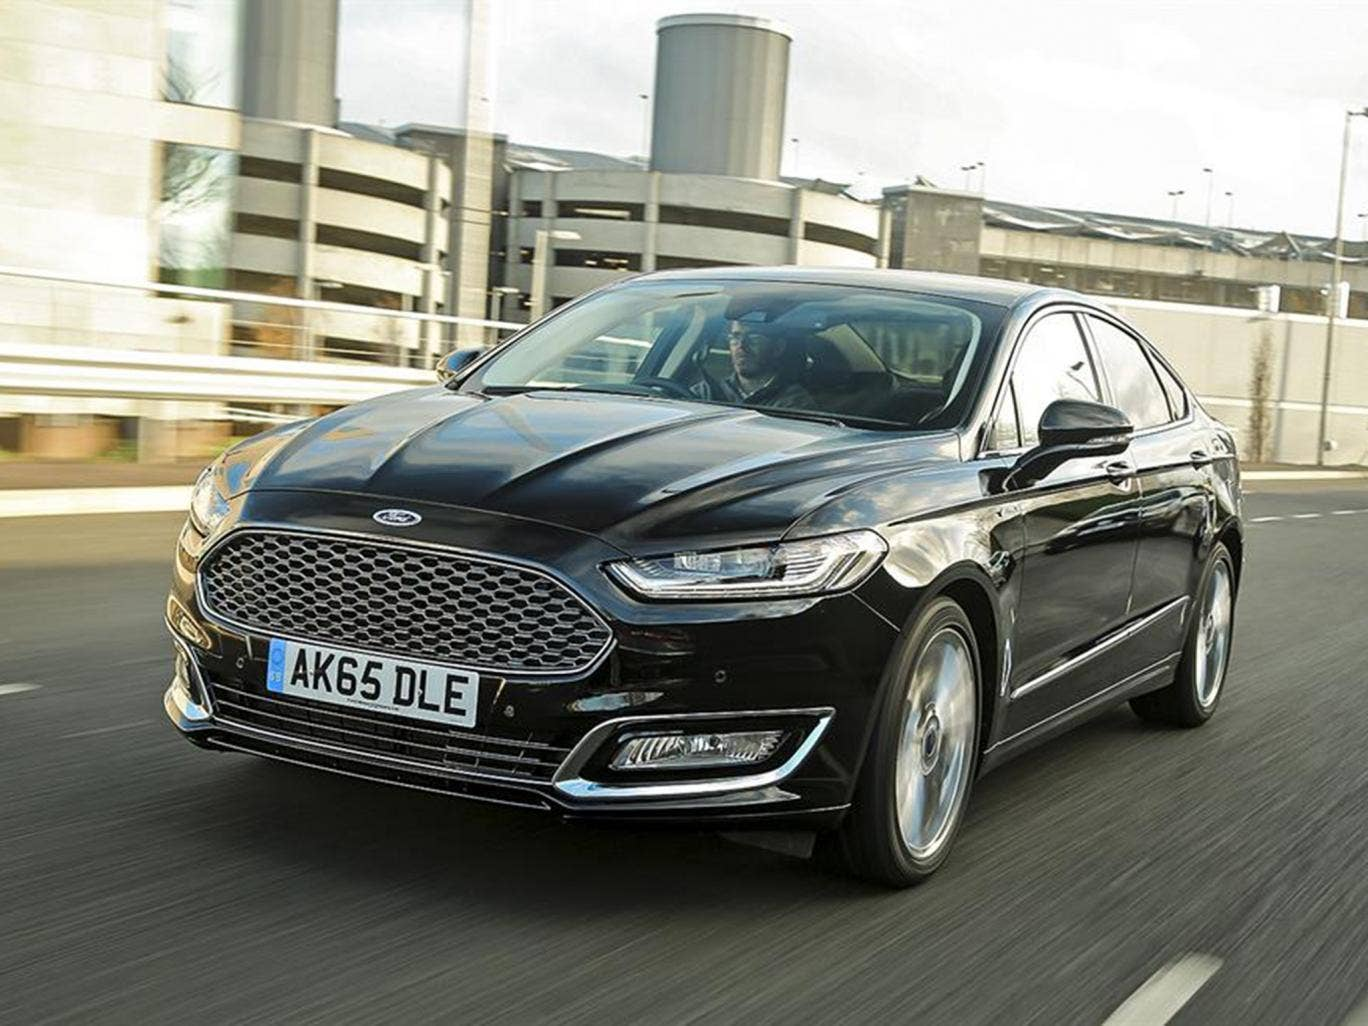 2015 ford mondeo vignale 2 0 tdci 210 powershift car review upmarket model aimed at bmw and. Black Bedroom Furniture Sets. Home Design Ideas